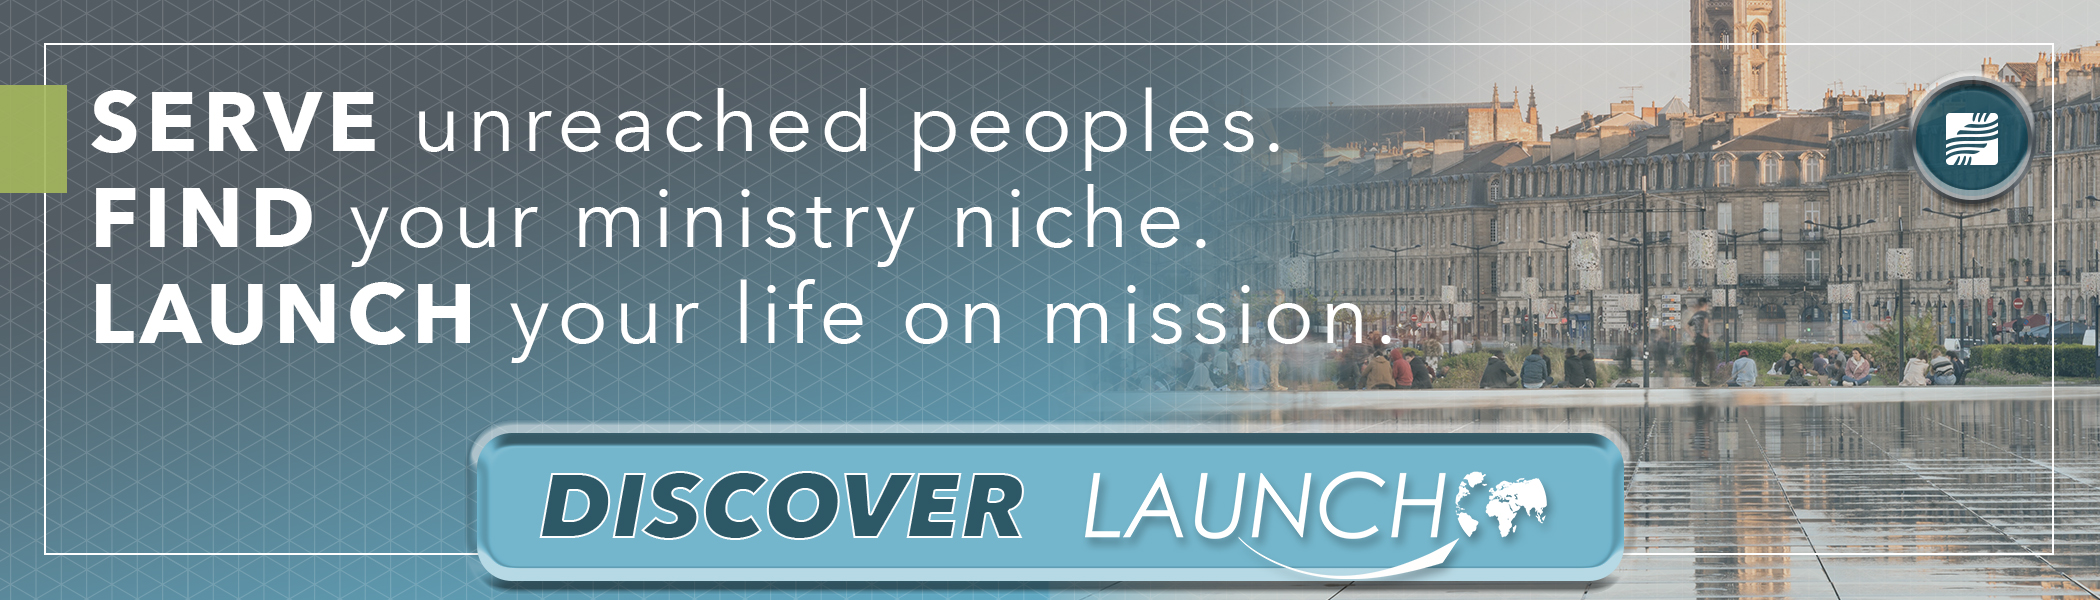 Explore cross-cultural evangelism through Launch, our two-year ministry exploration program!